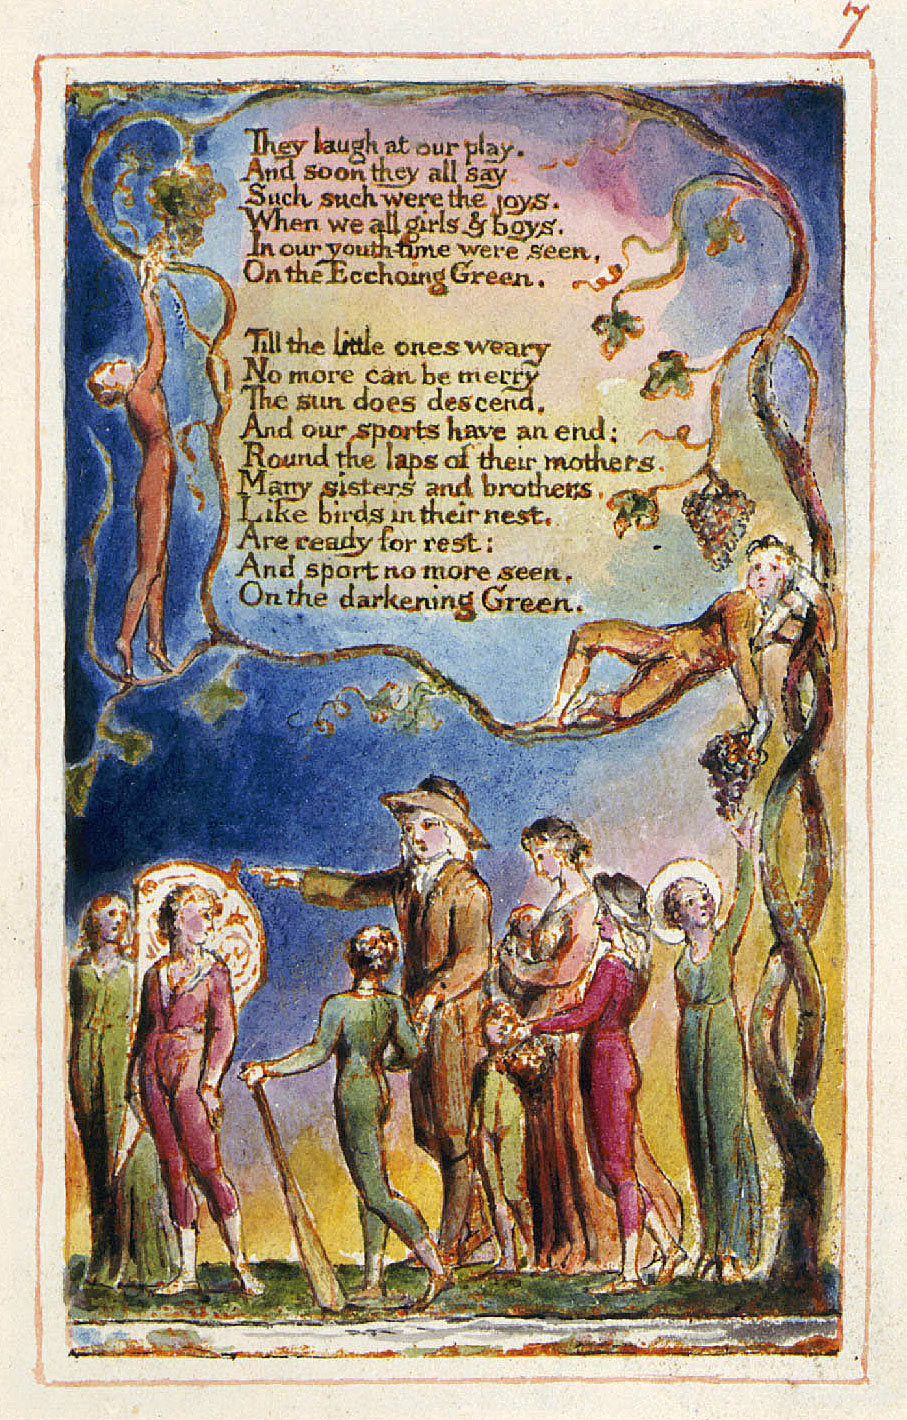 Wikipedia:WikiProject Poetry/William Blake